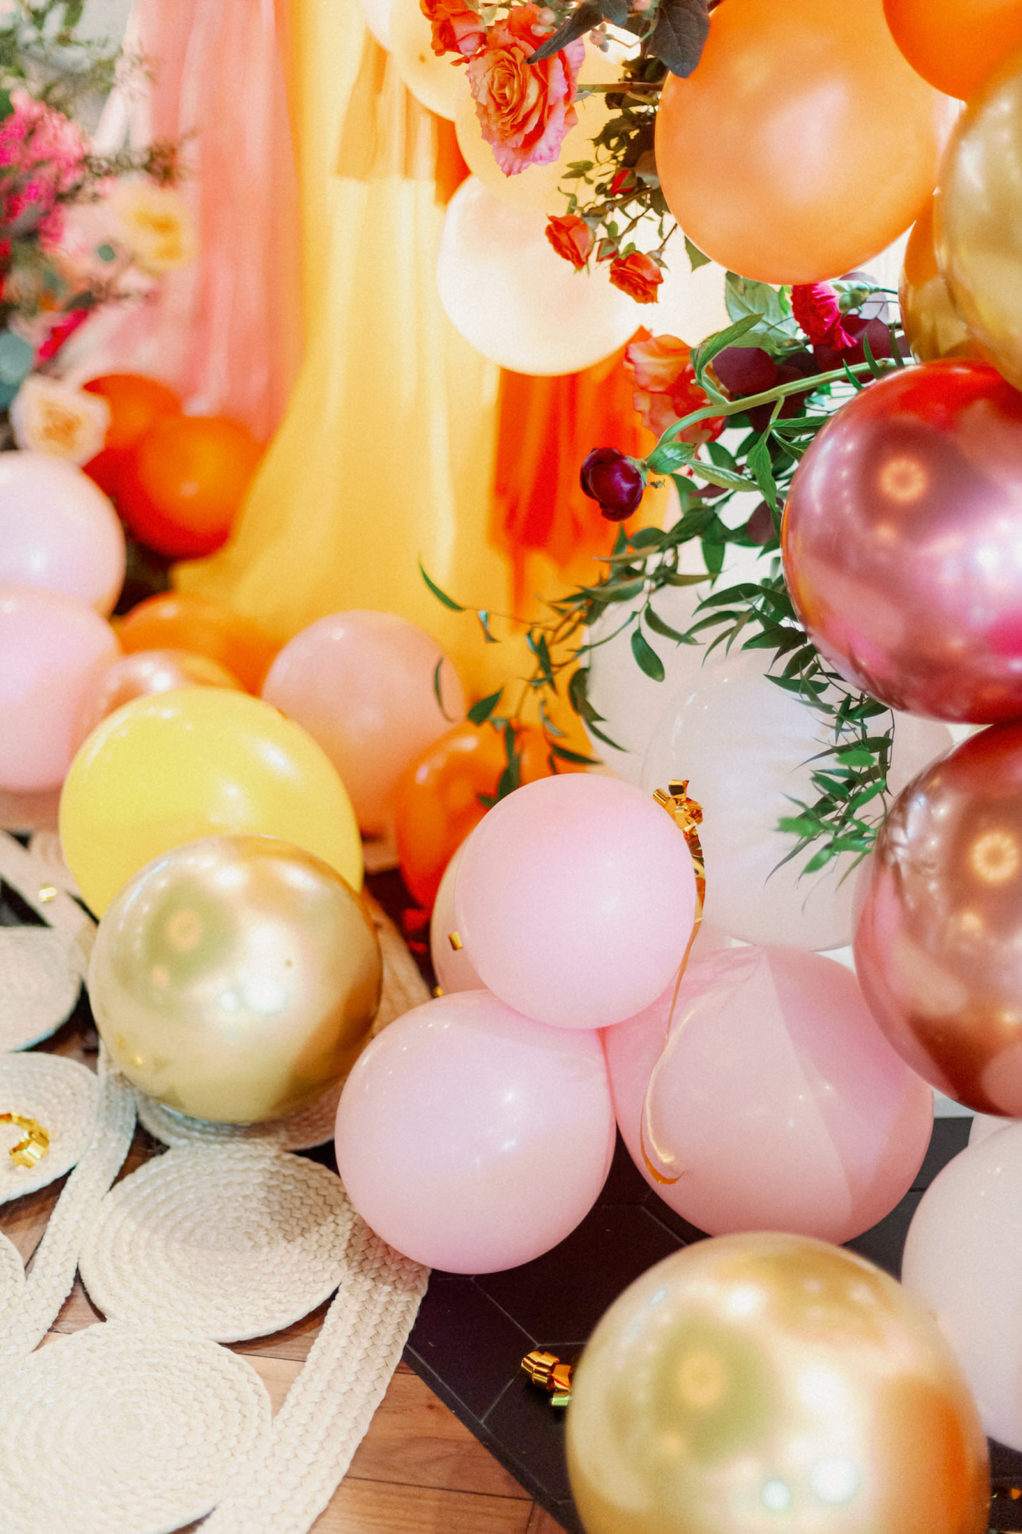 Whimsical and Colorful Wedding Decor, Pink, Rose Gold, Yellow Gold, Yellow, Orange Balloon Ceremony Backdrop   Tampa Bay Wedding Photographer Dewitt for Love